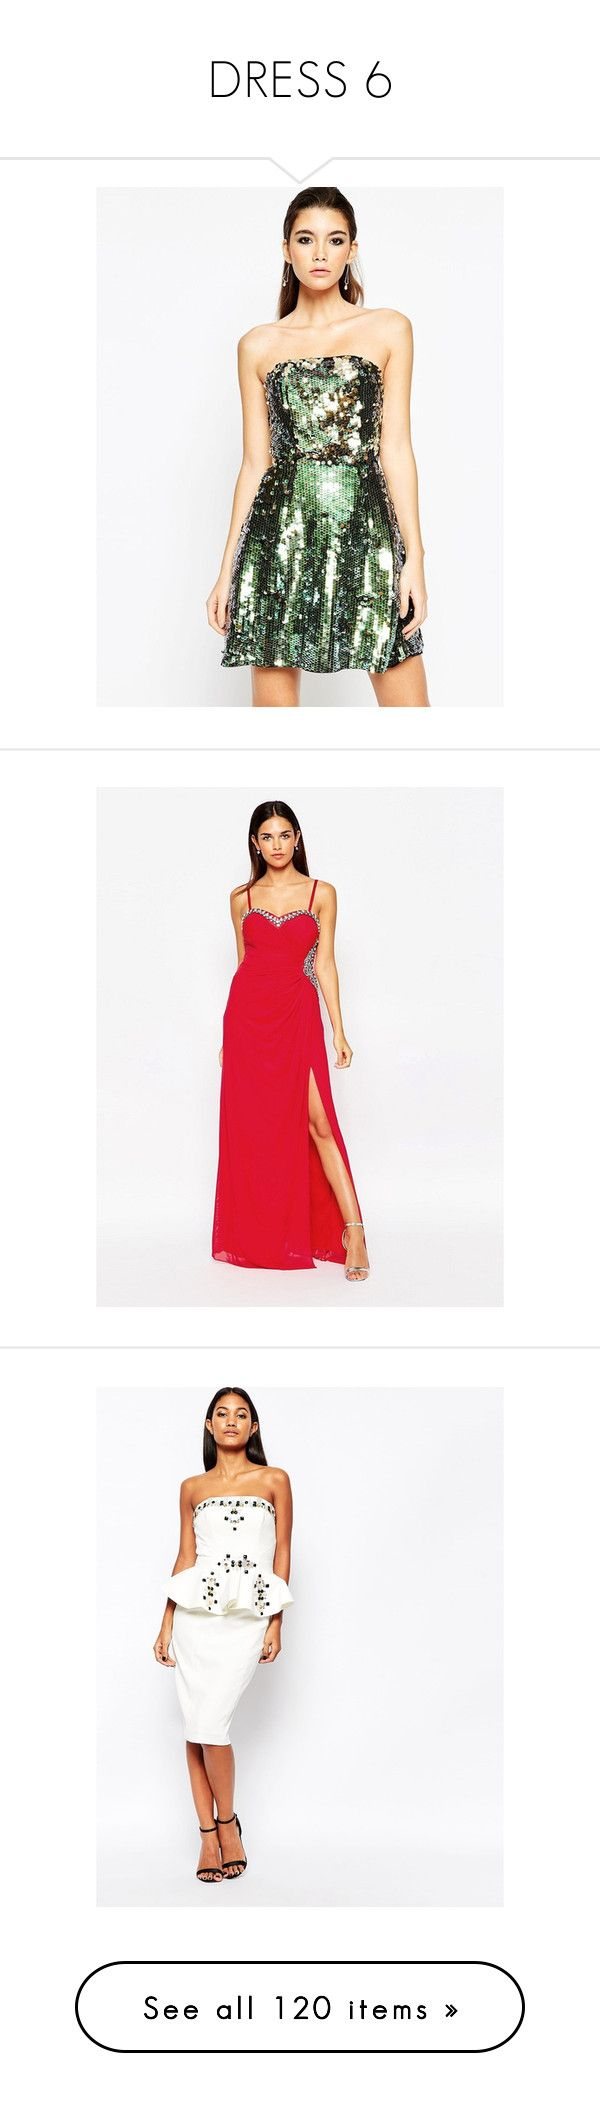 """""""DRESS 6"""" by missk2blue ❤ liked on Polyvore featuring dresses, multi, bandeau dress, short sequin cocktail dresses, asos cocktail dresses, white sequin dress, sequin dresses, orange, tall maxi dresses and orange maxi dress"""